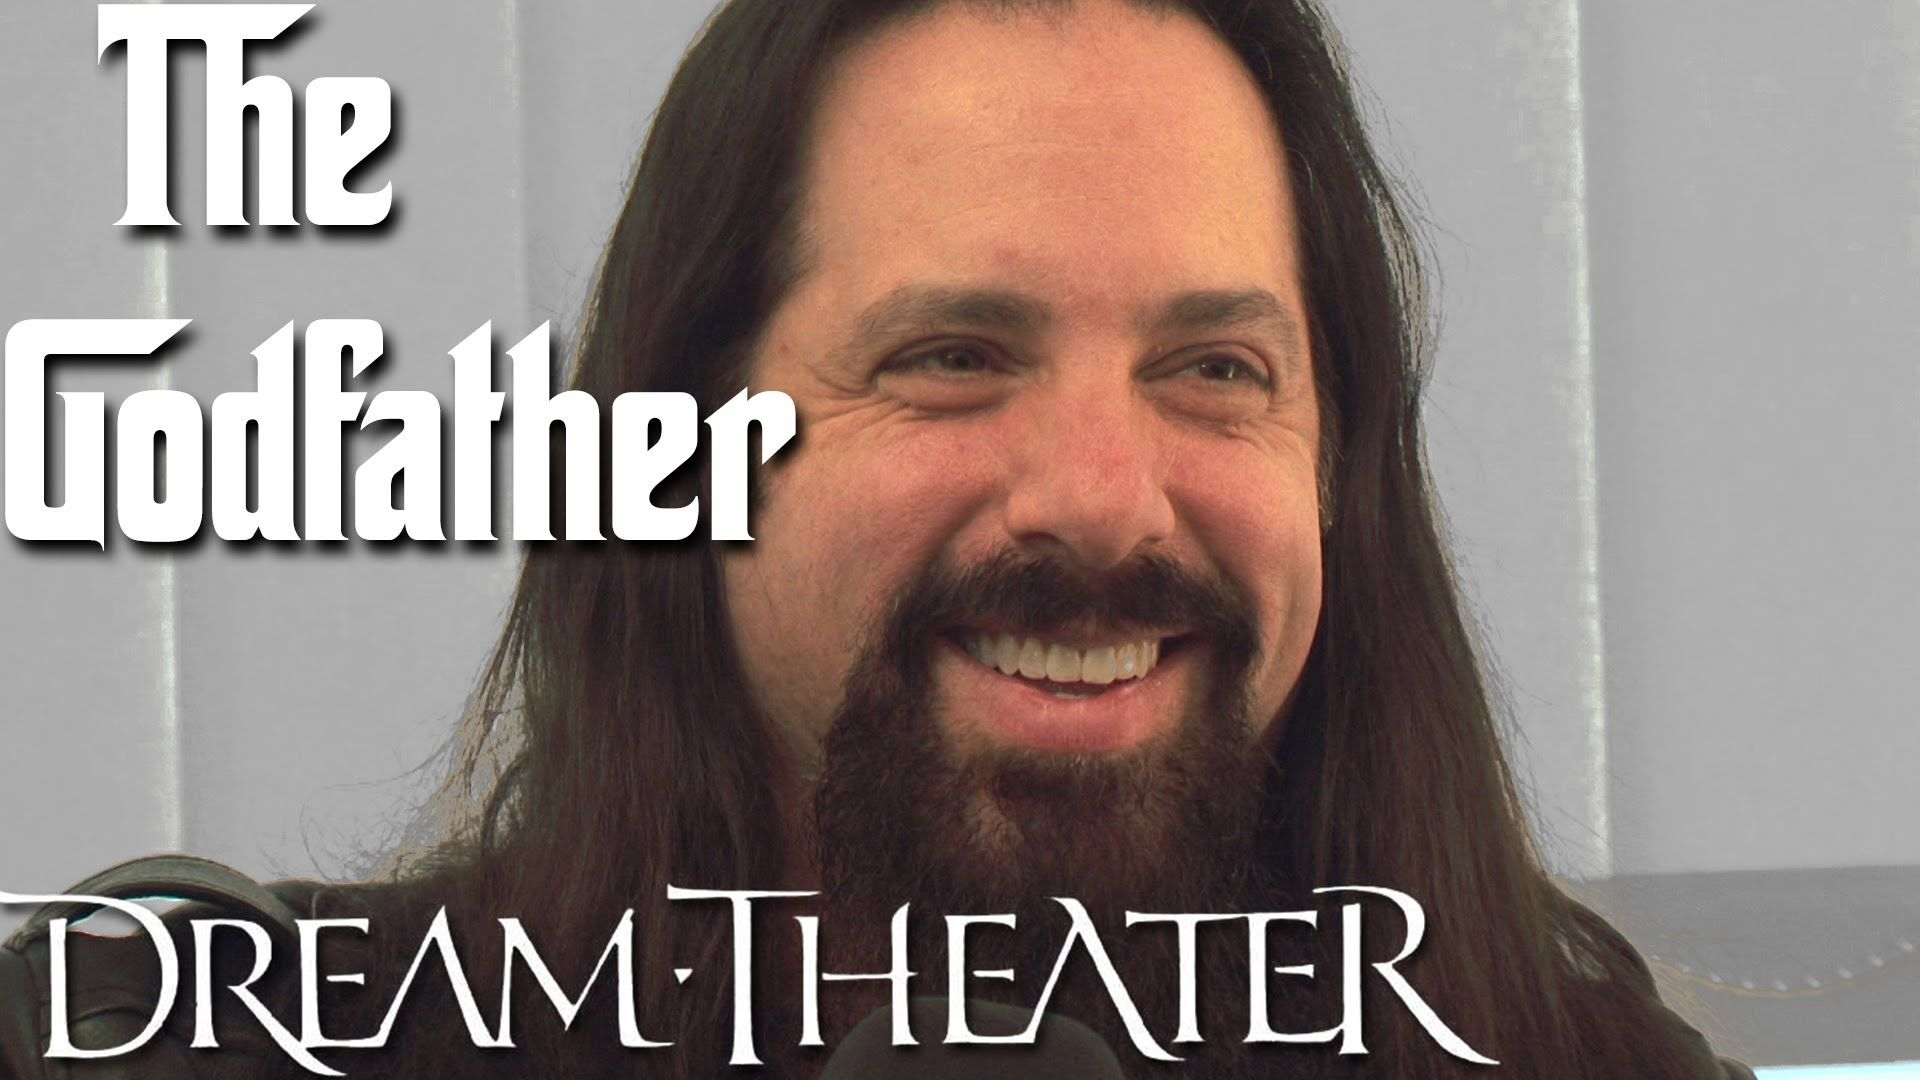 DREAM THEATER - The Godfather